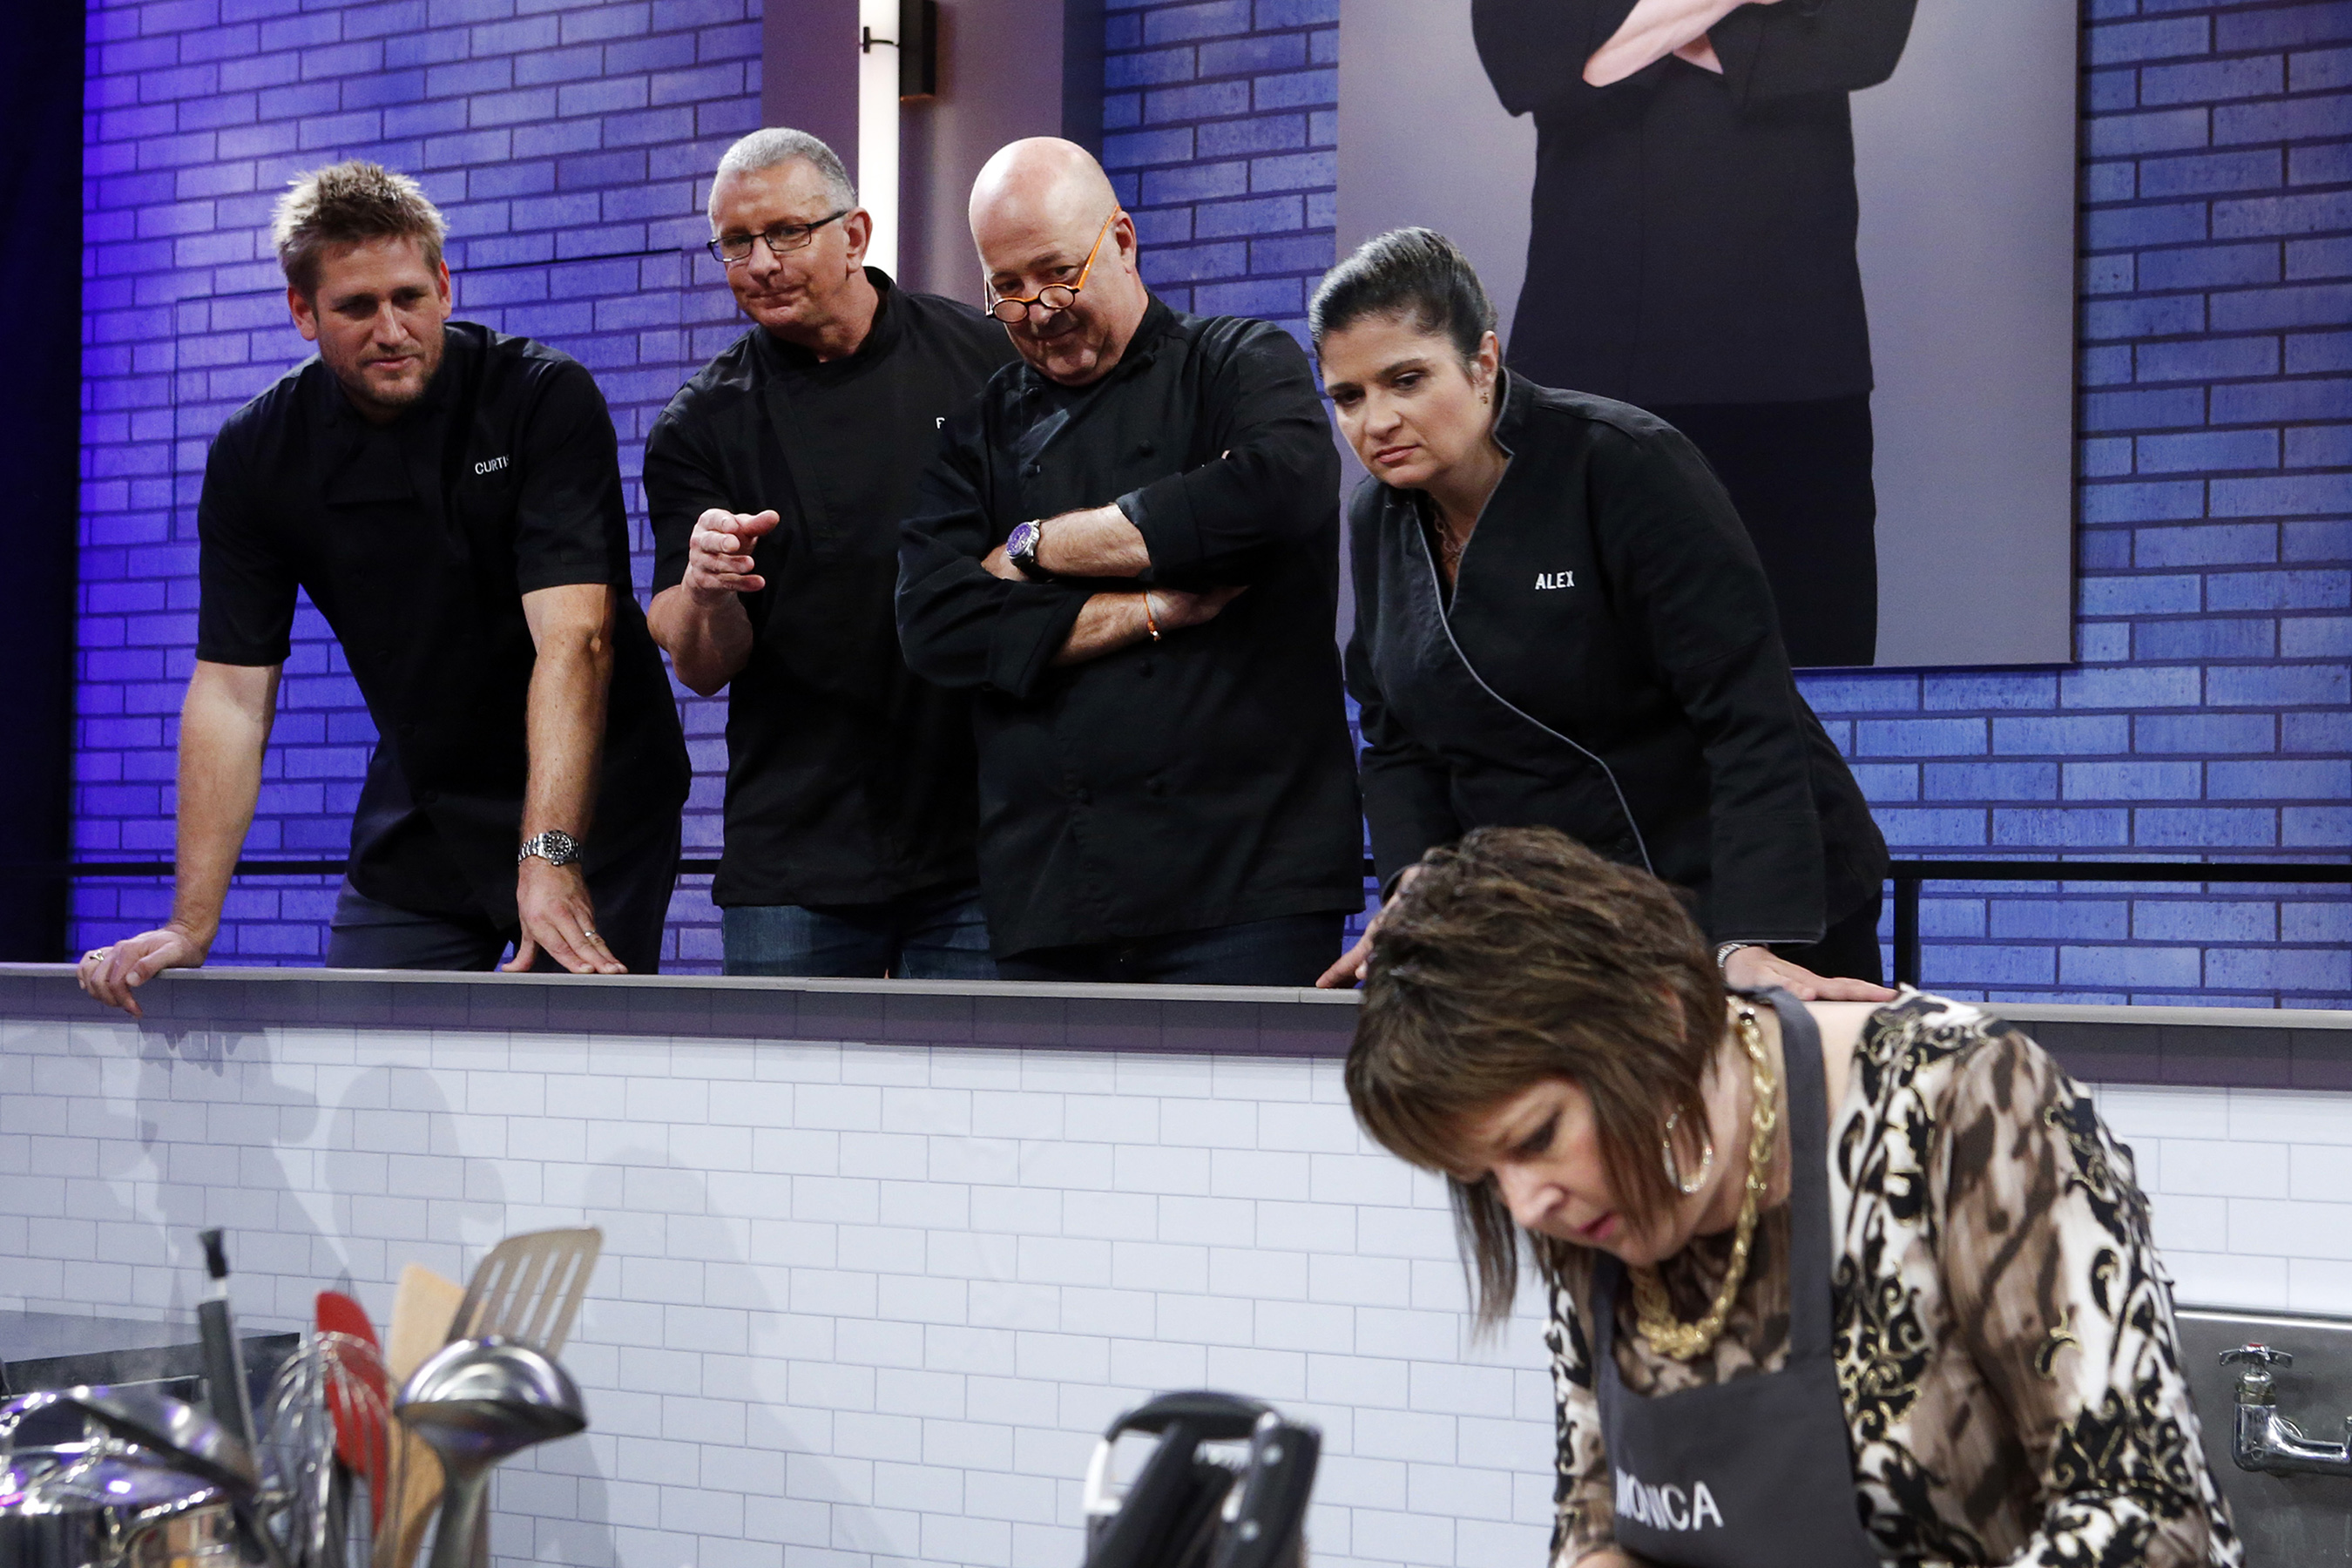 Mentors Curtis Stone, Robert Irvine, Andrew Zimmern and Alex Guarnaschelli observe contestant Monica Folken on Food Network's All-Star Academy